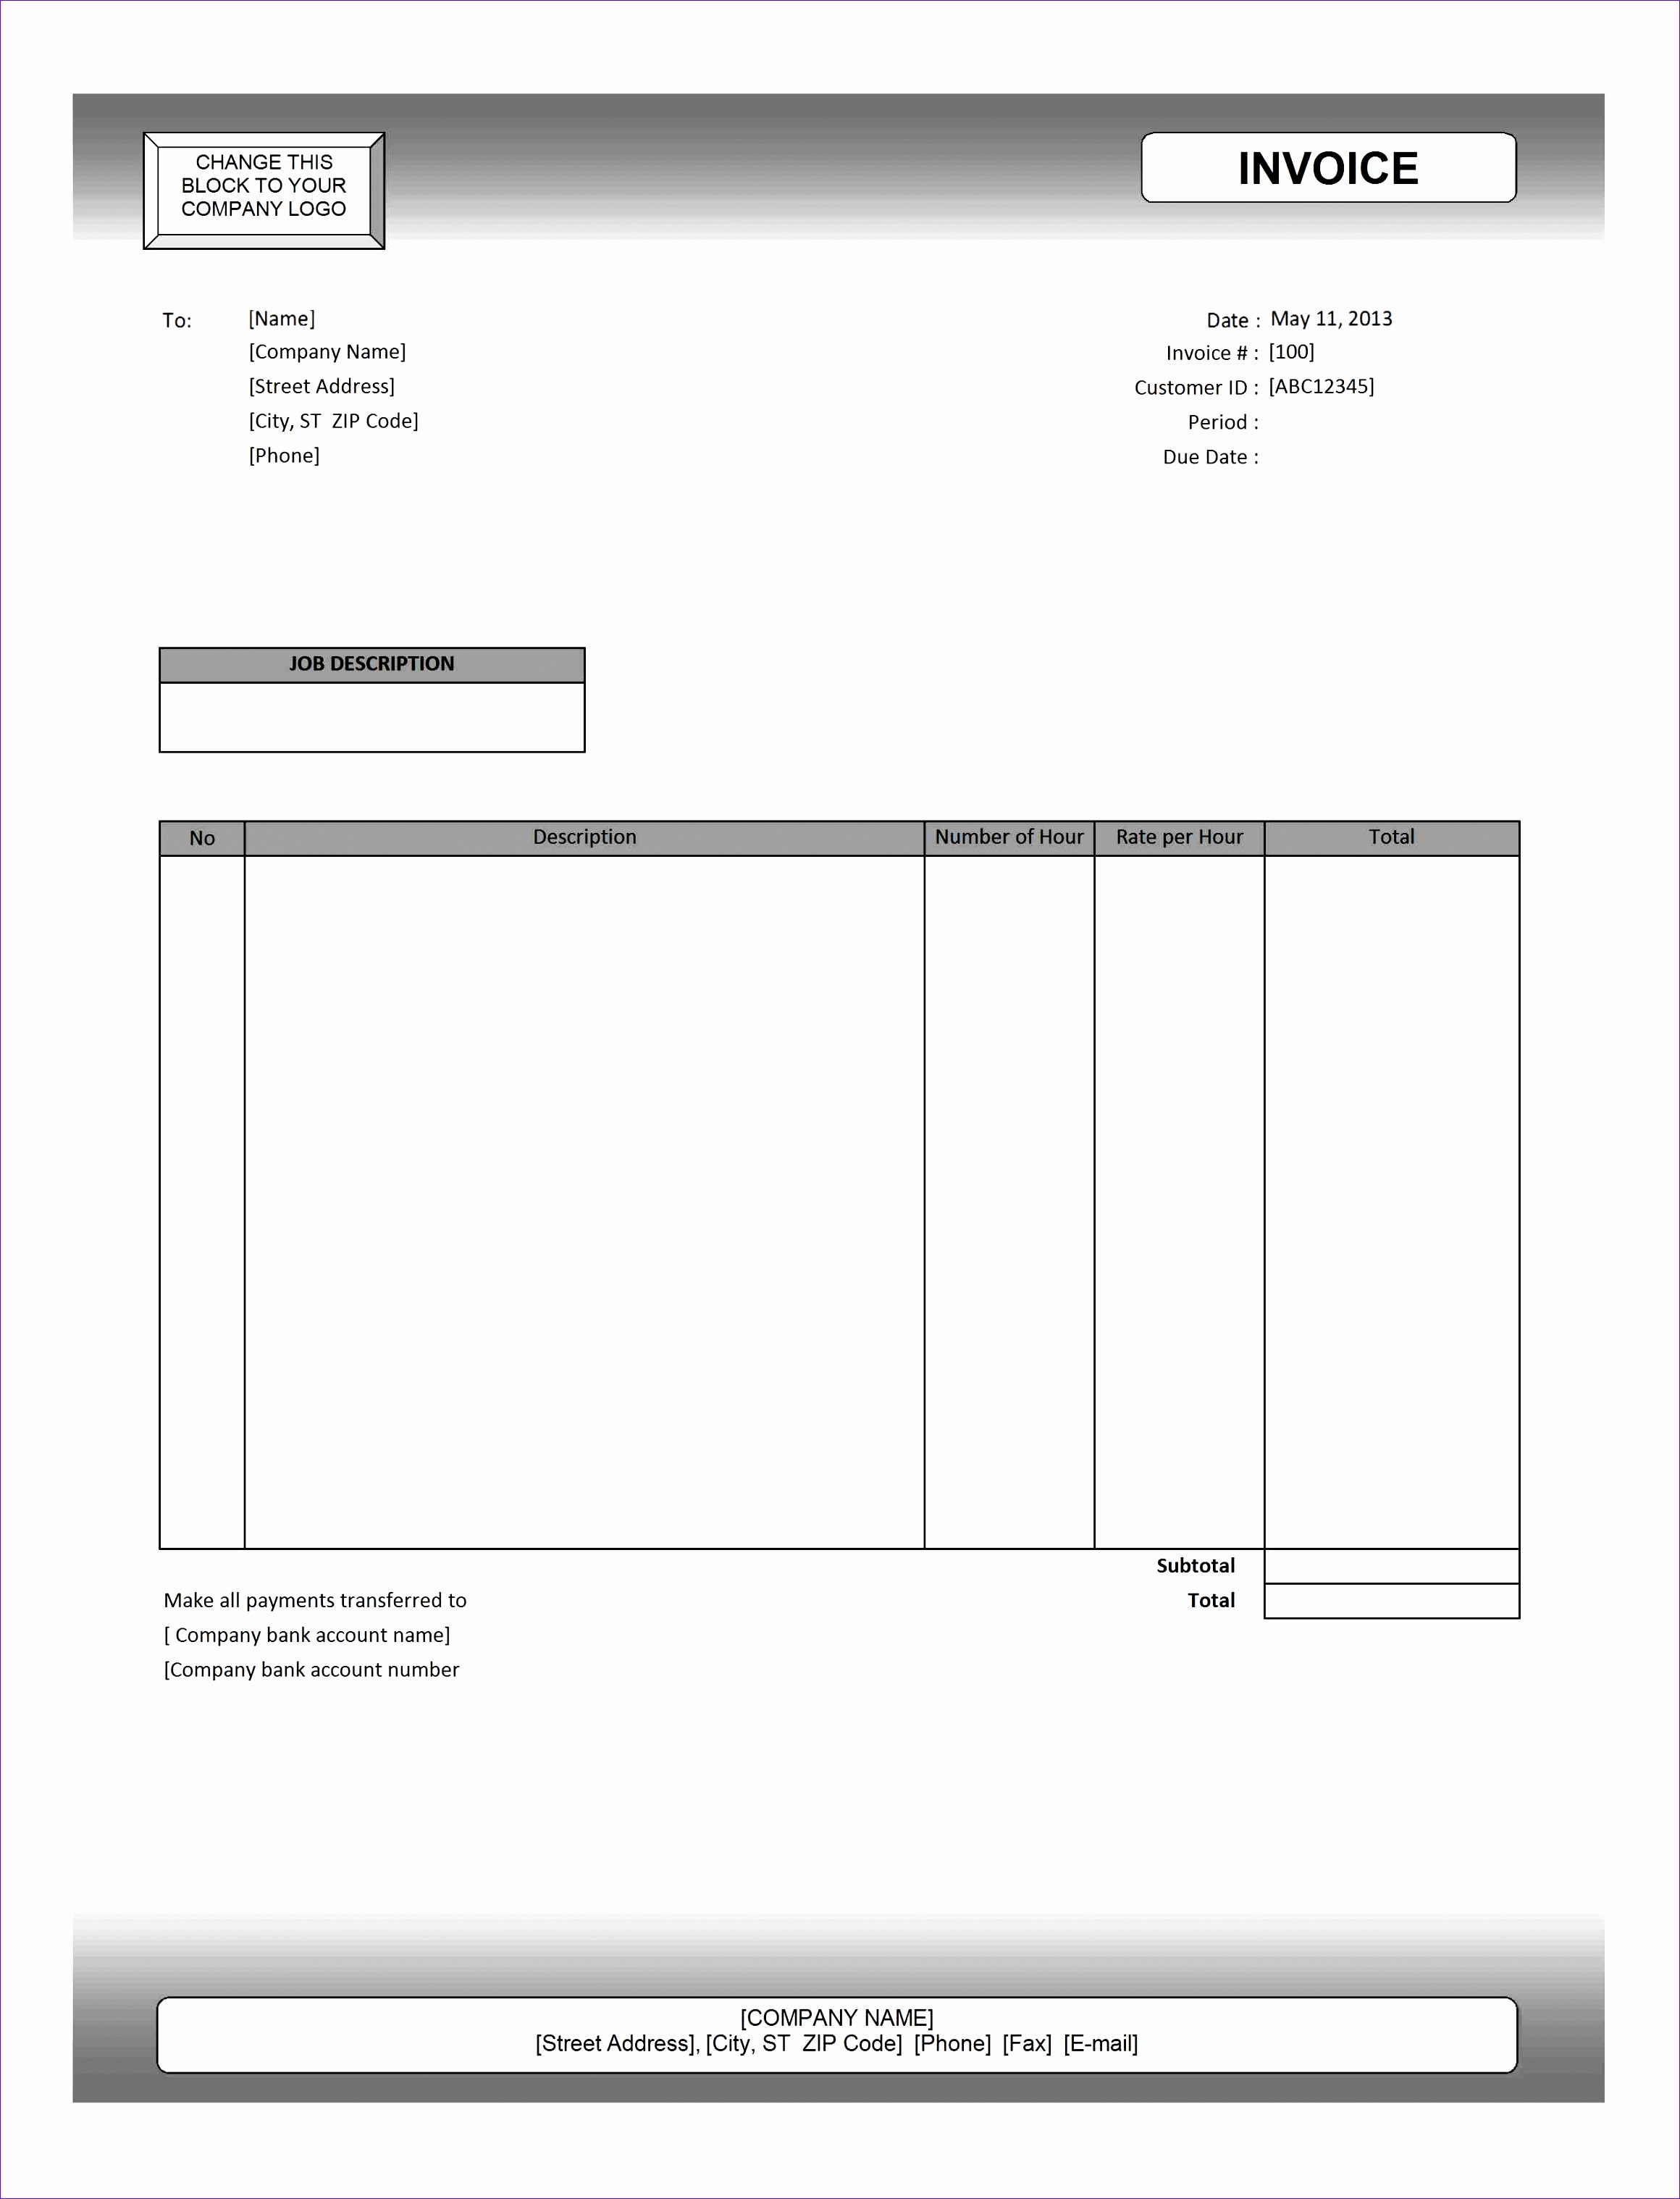 editable invoice template excel 2173 23203036